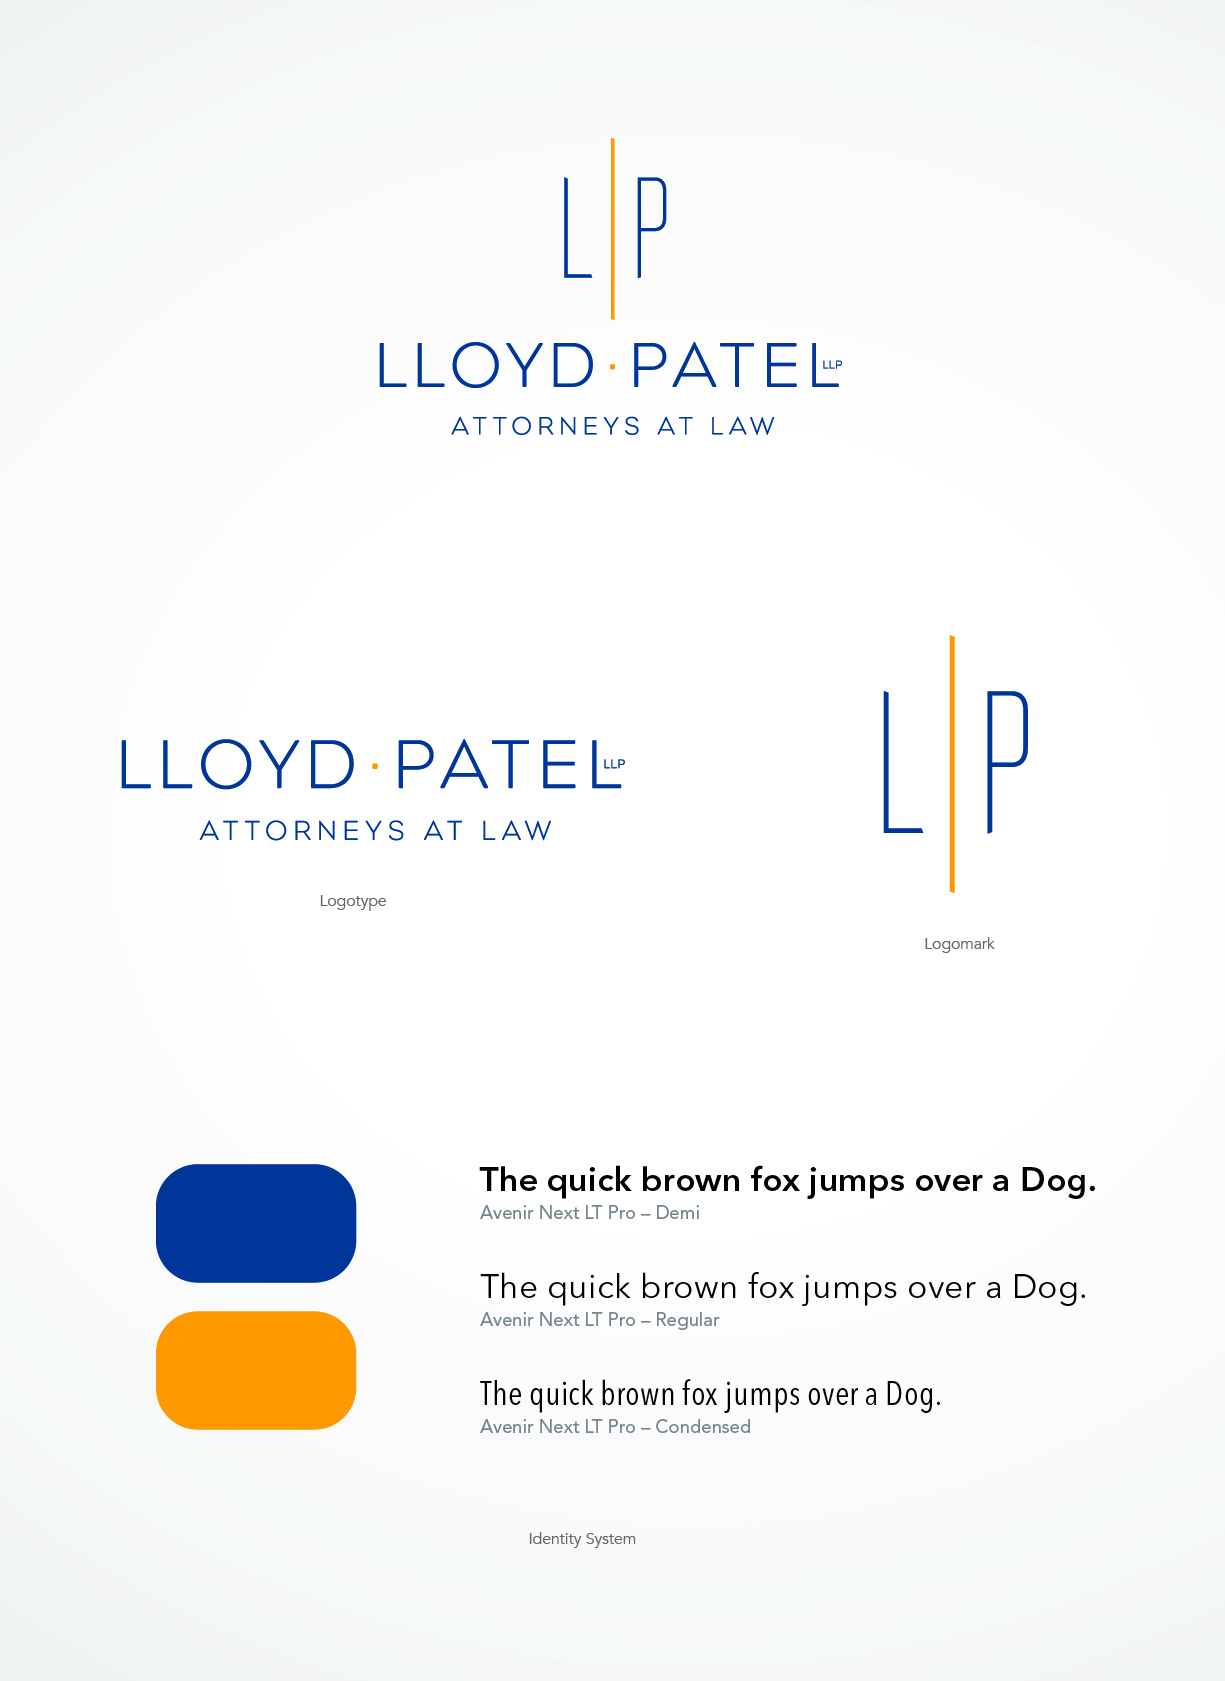 Creating an identity, identity system and website for a new law partnership that evokes professionalism and stability,